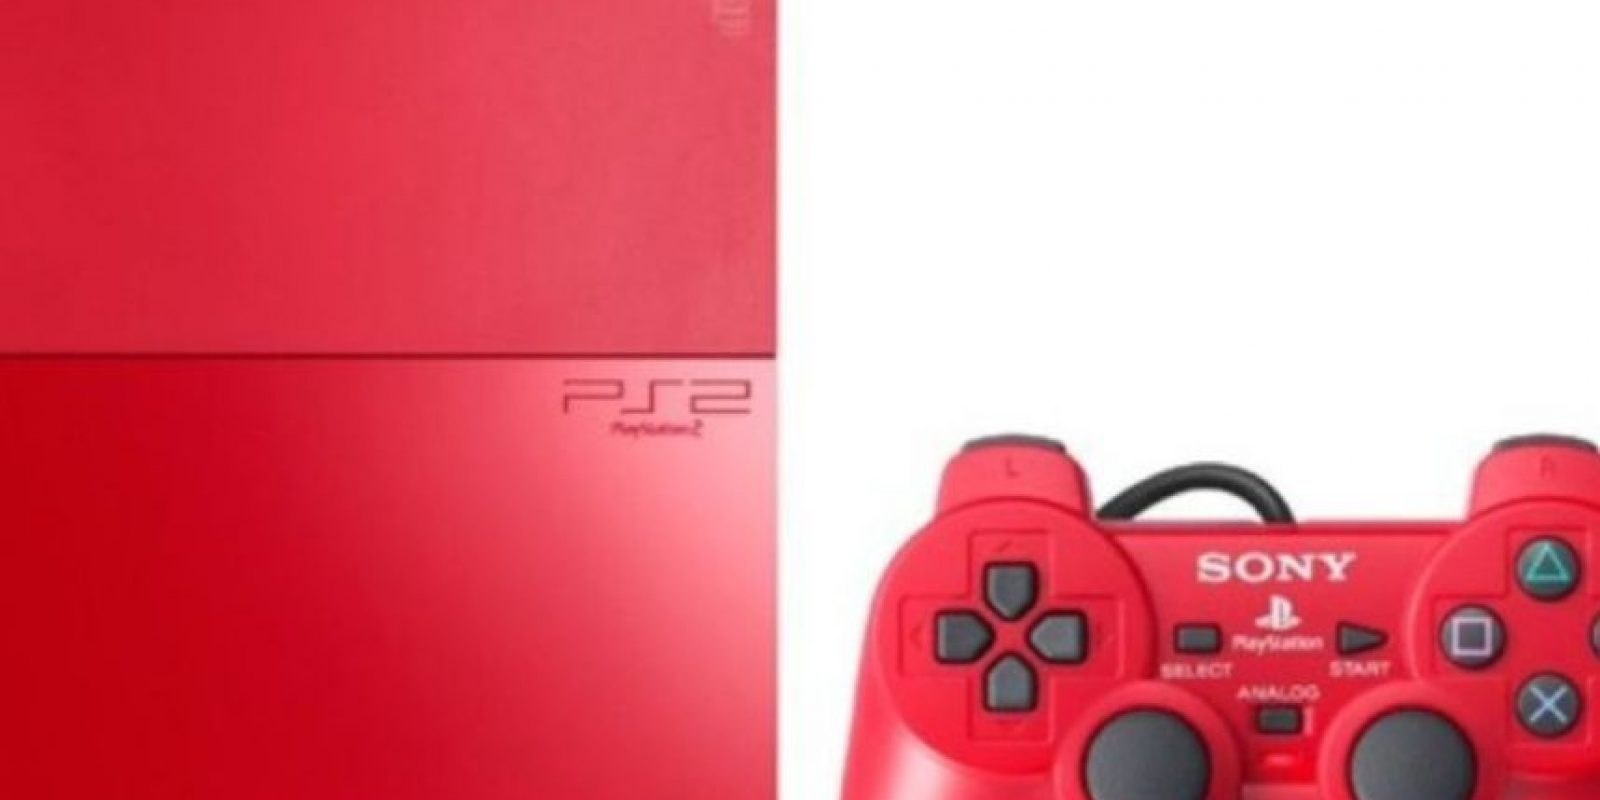 PlayStation 2 Slim rojo. Foto: Sony